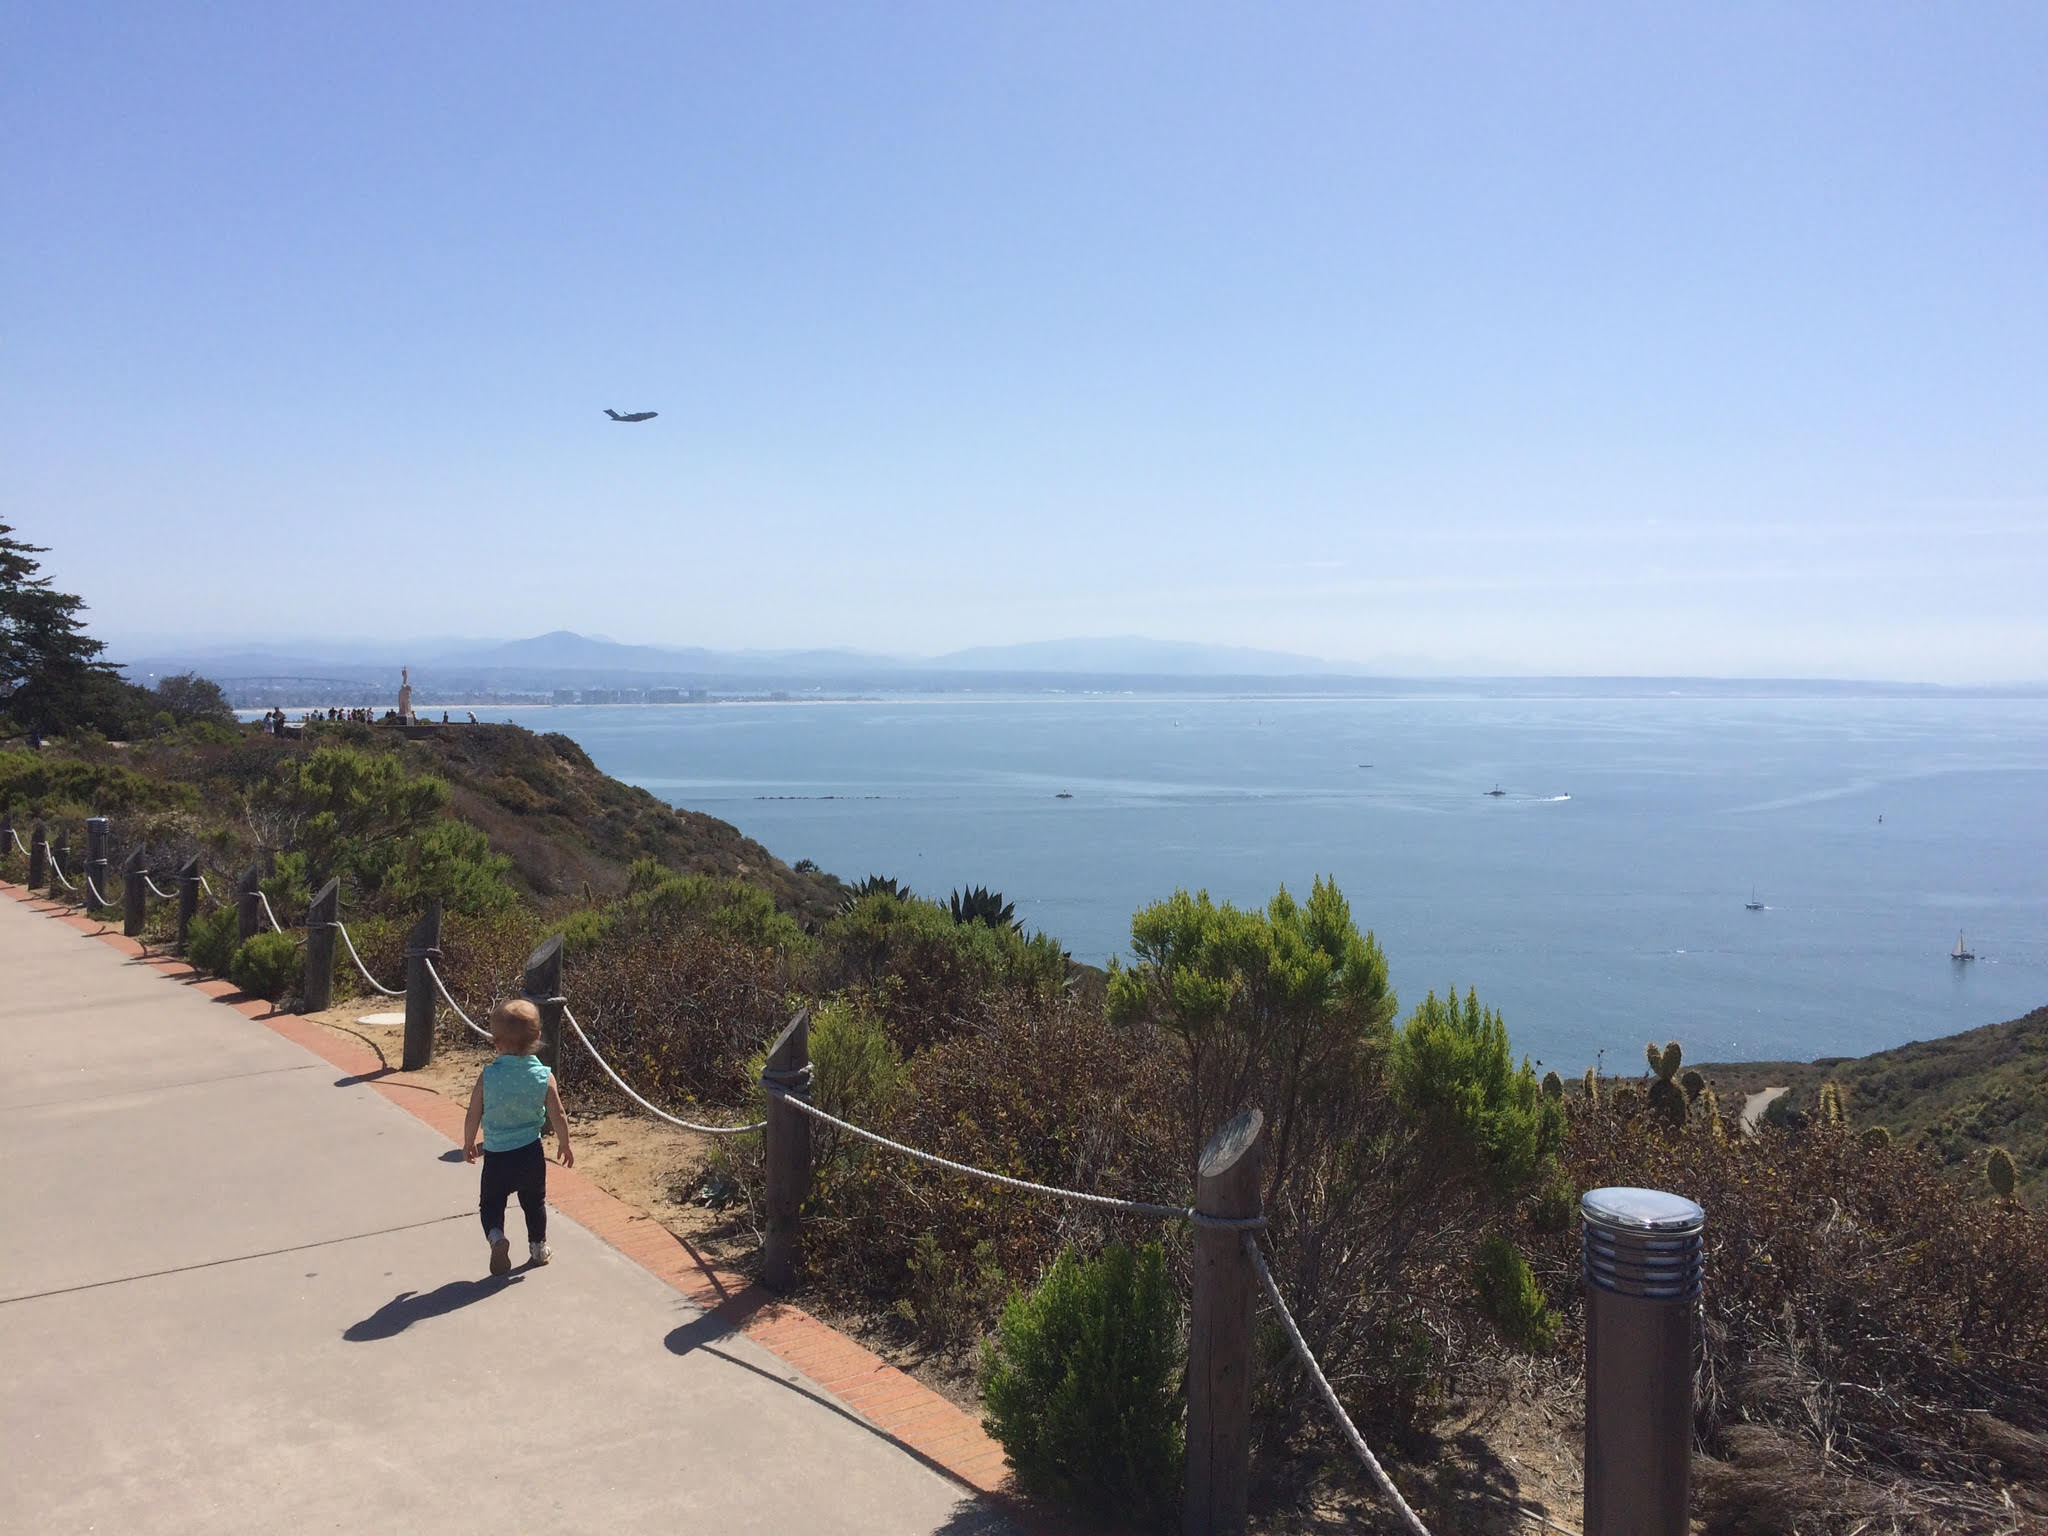 Olivia running to watch the airplanes at Point Loma in San Diego, CA. April 2015